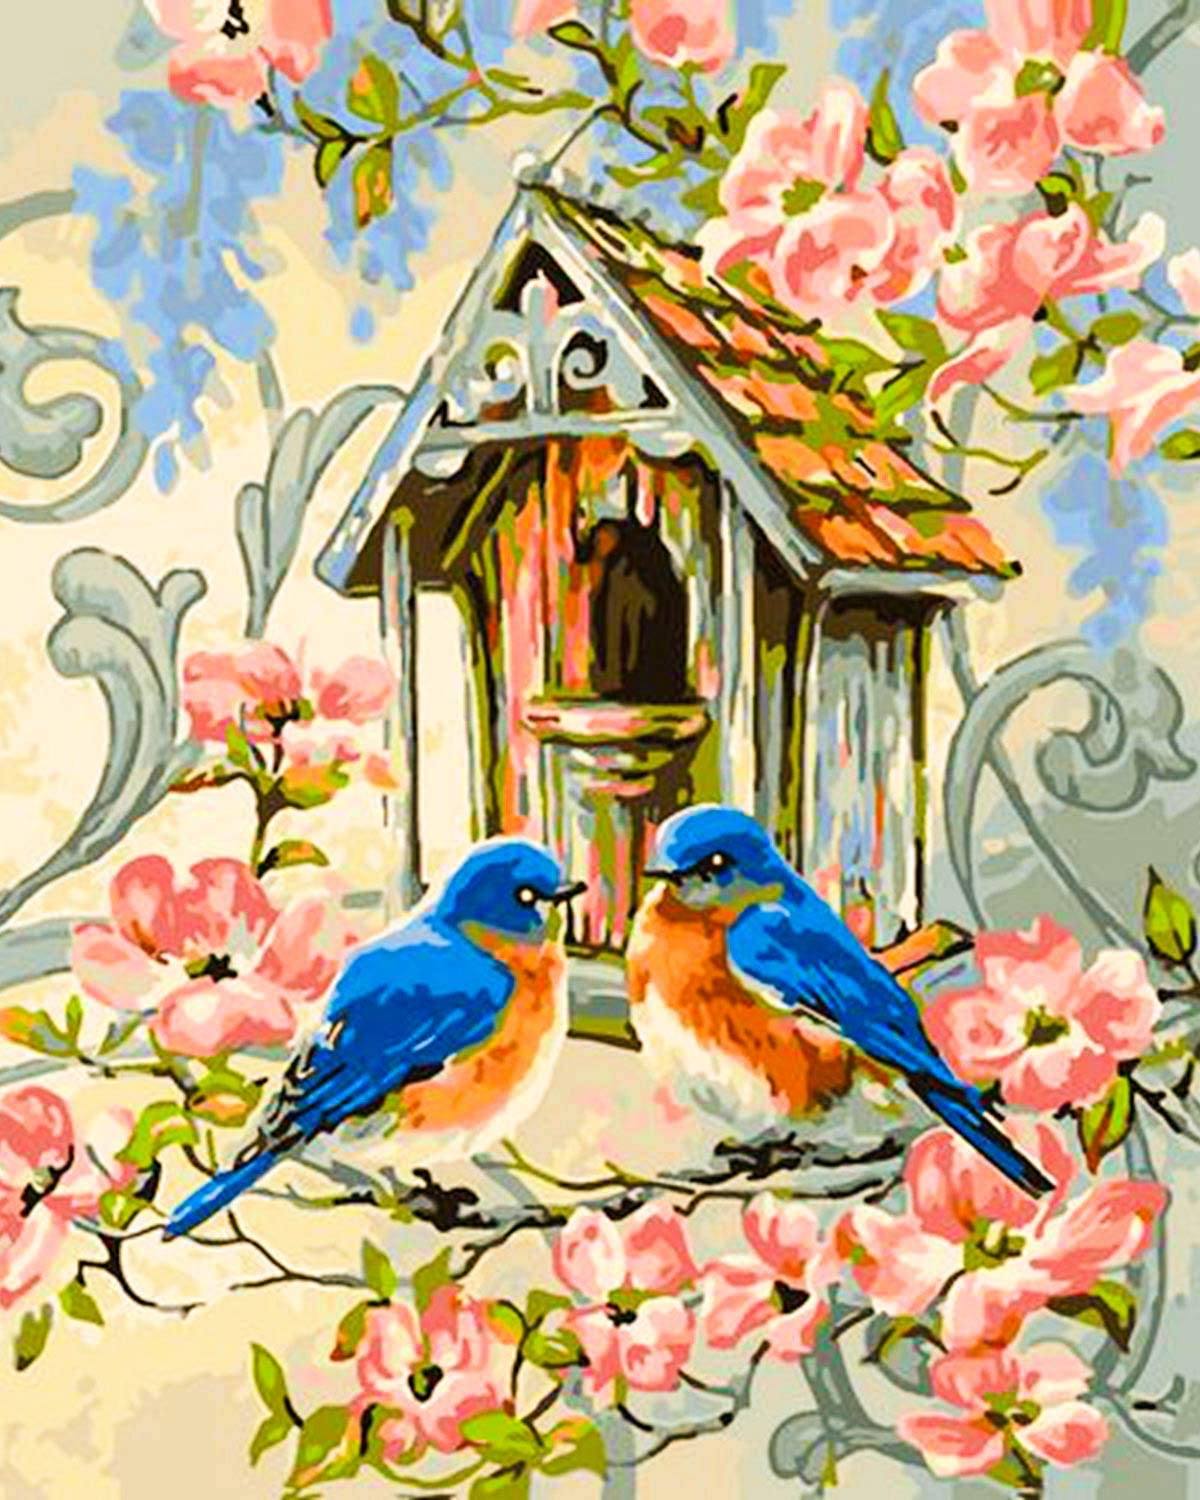 DIY Paint By Number Kit Digital Oil Painting On Canvas Birds Animal Wall Decor